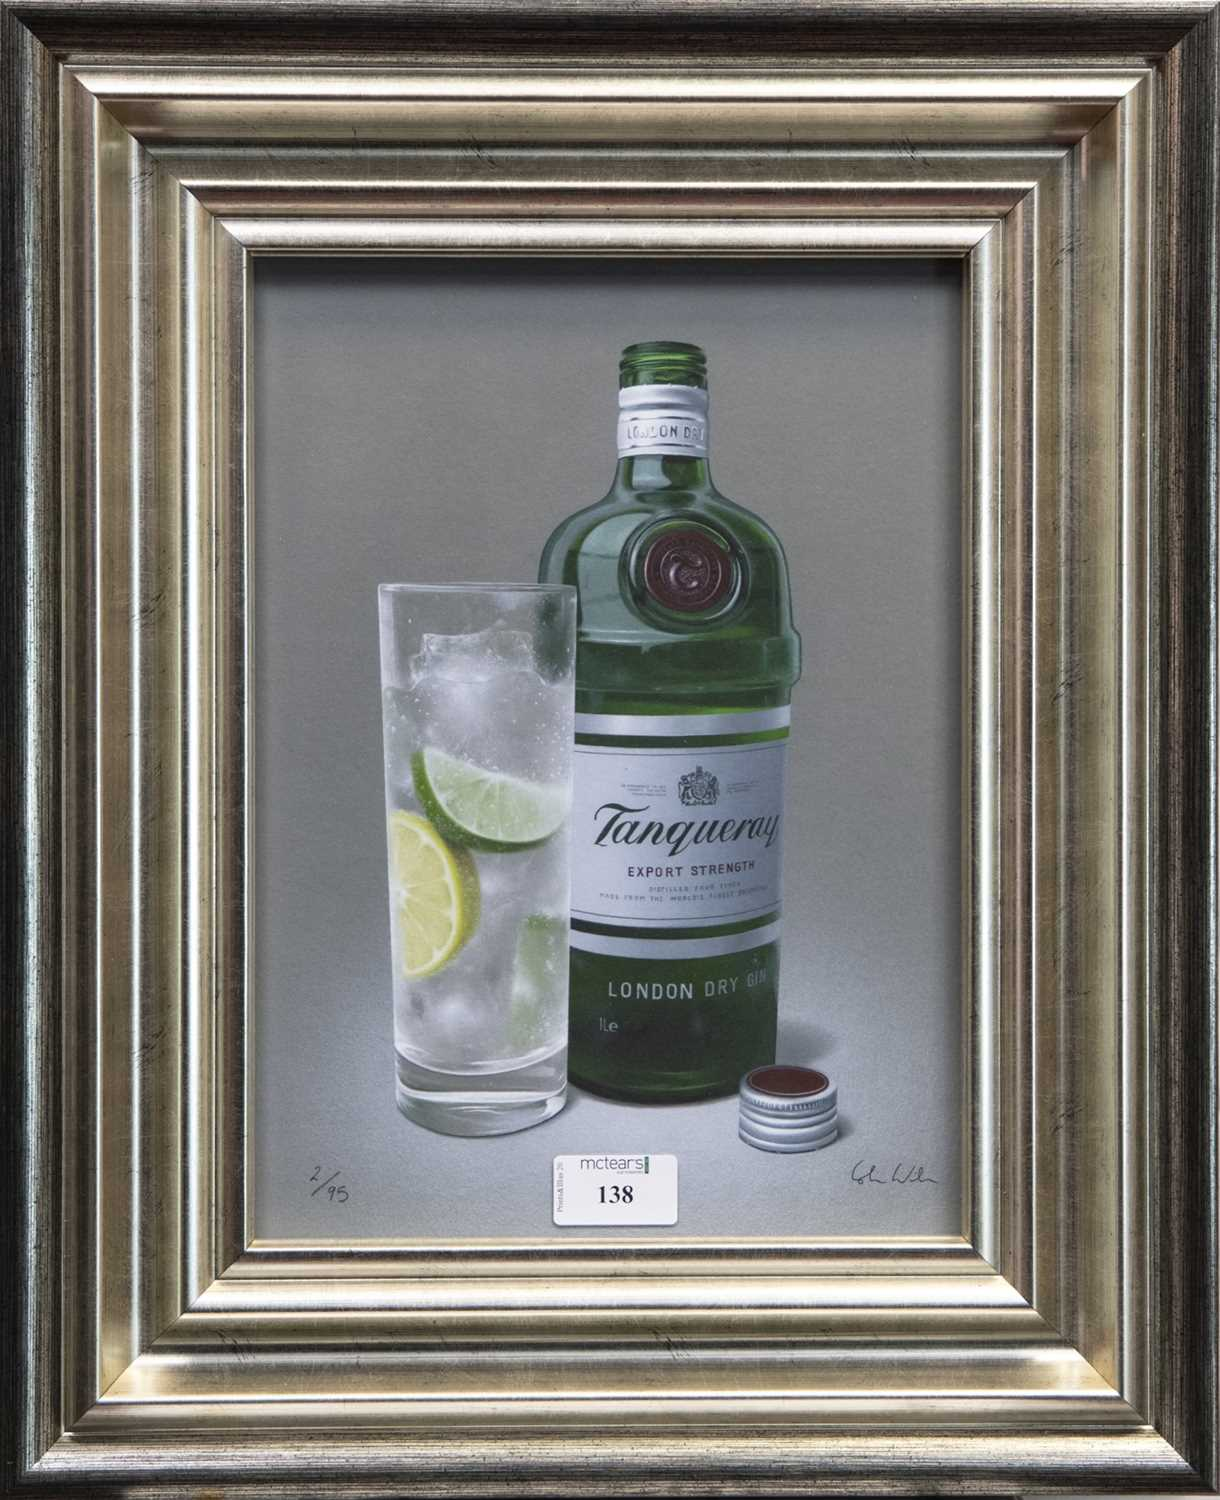 Lot 138 - TANTALISING TANQUERAY GIN, A GICLEE PRINT BY COLIN WILSON